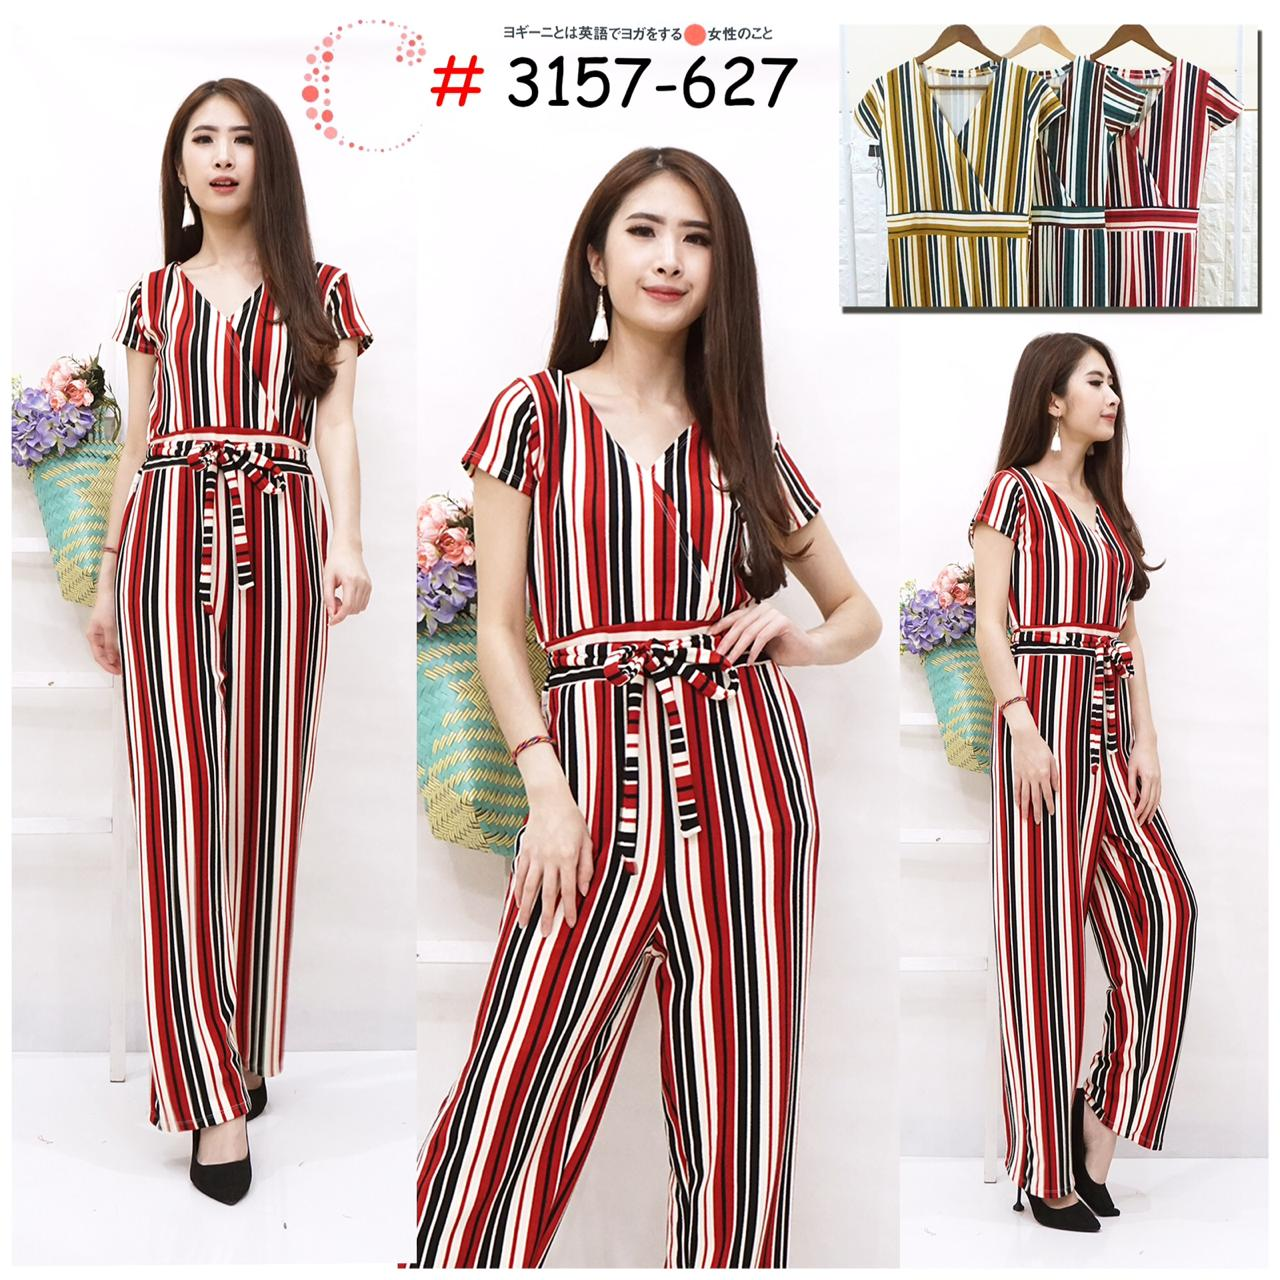 Stripes jumpsuit 3157-627